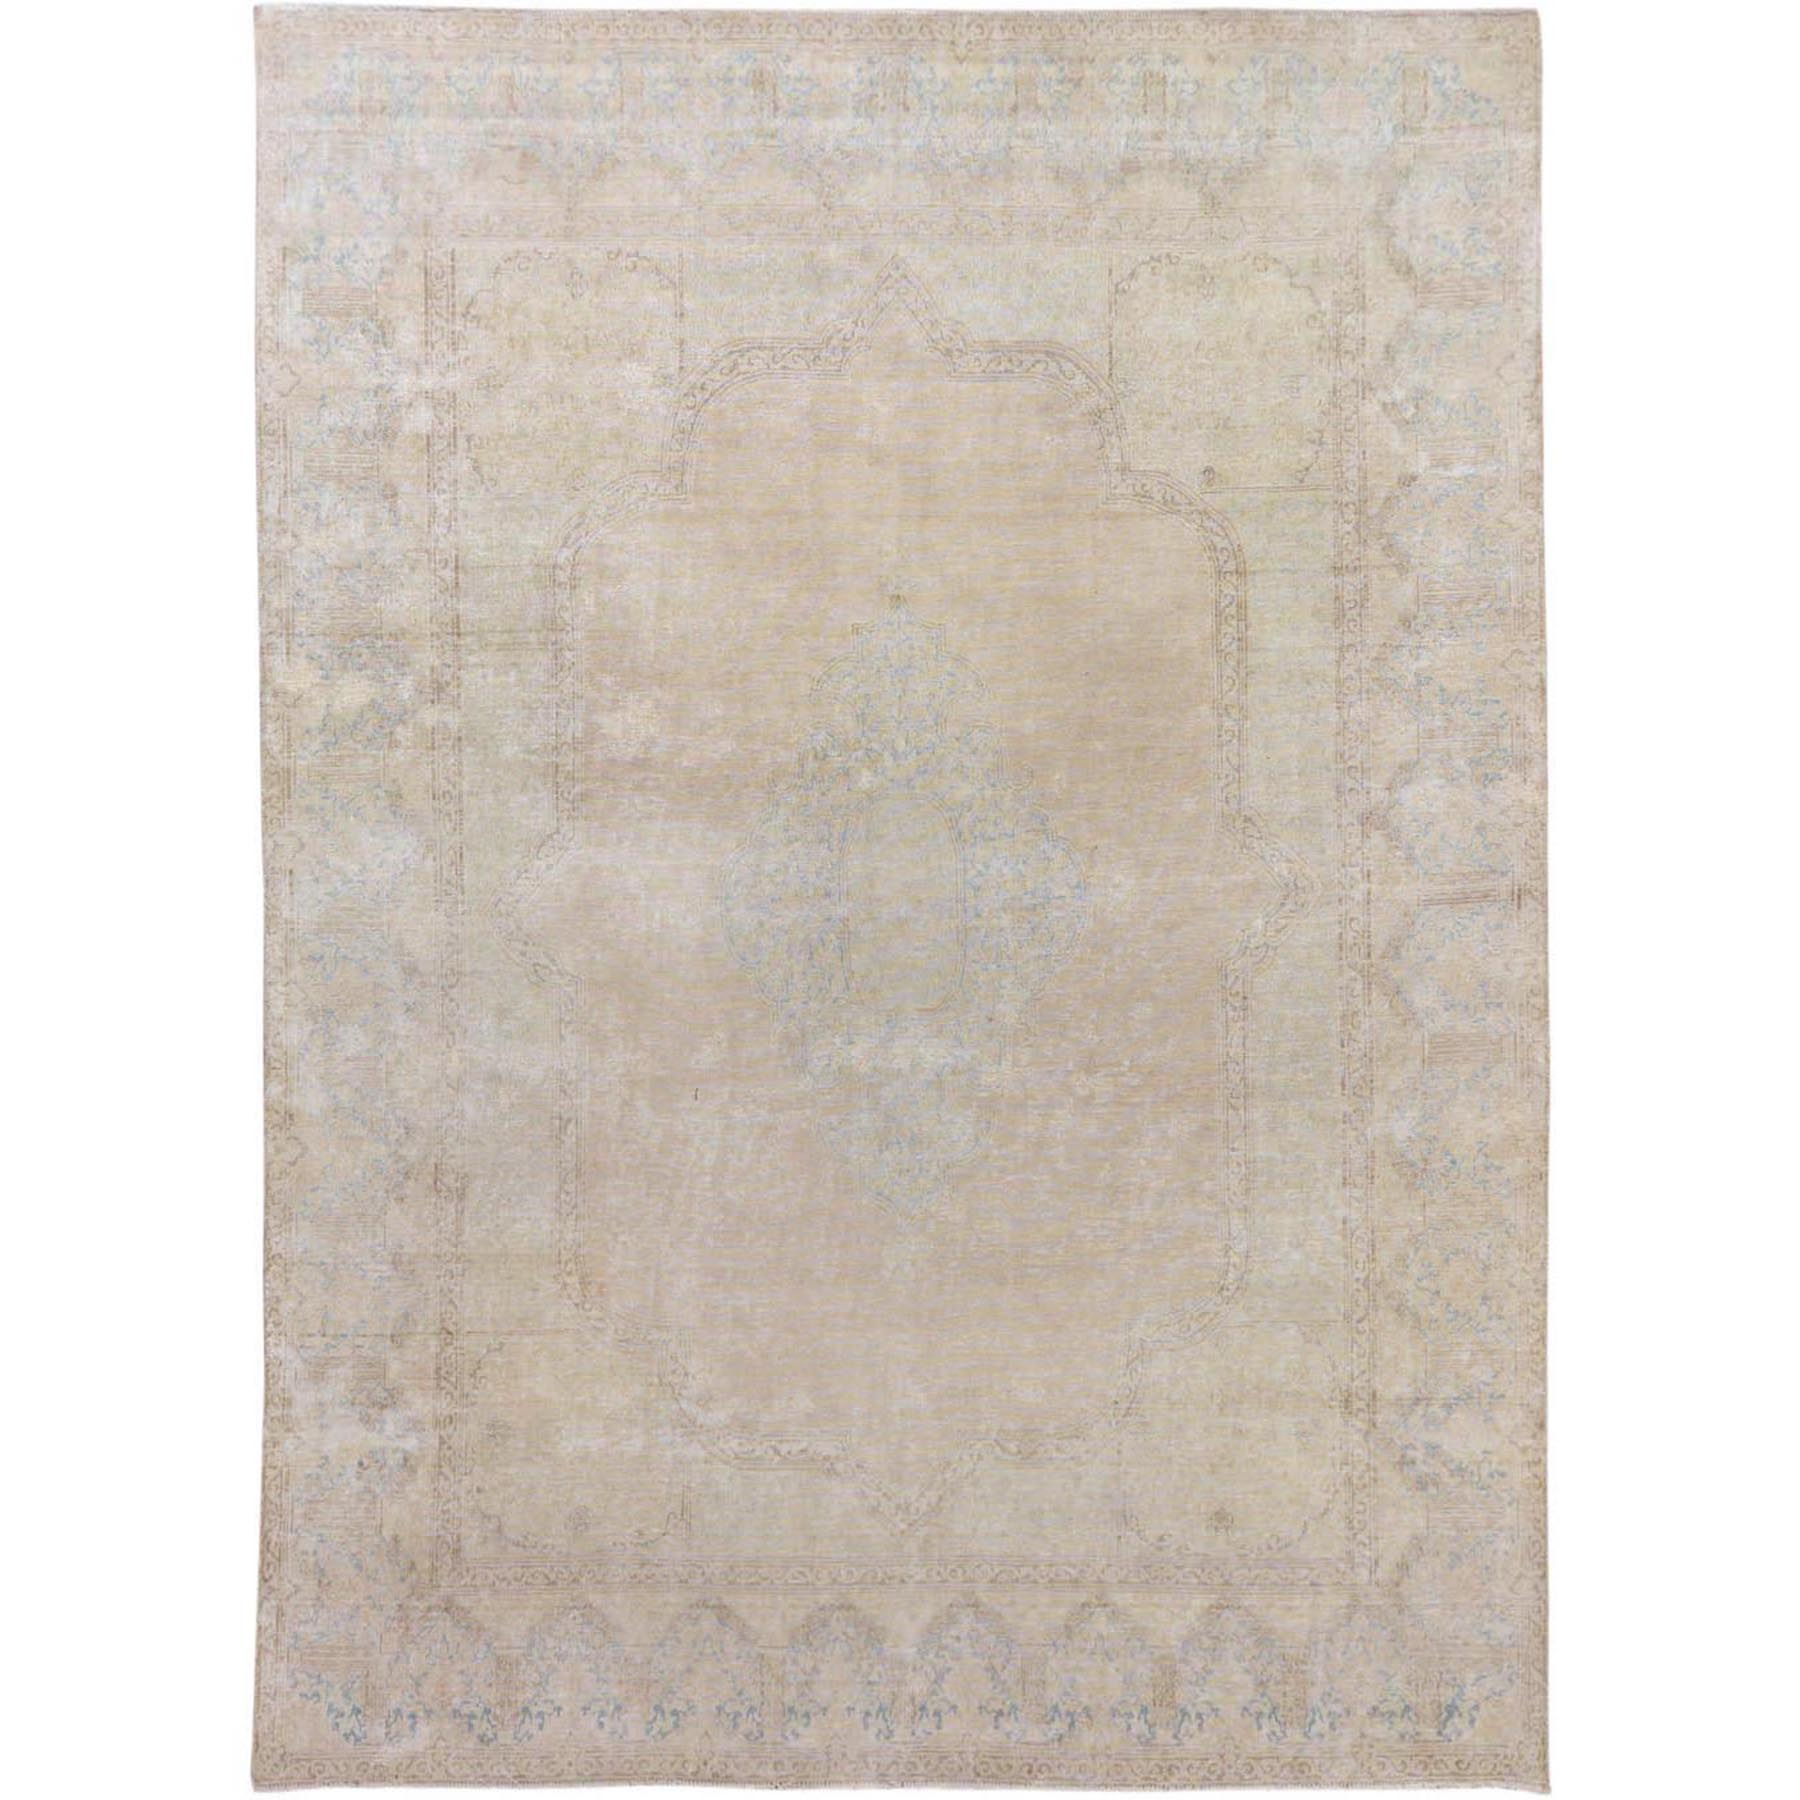 "8'9""x11'10"" Ivory Washed Out and Worn Down Vintage Persian Kerman Pure Wool Hand Woven Oriental Rug"